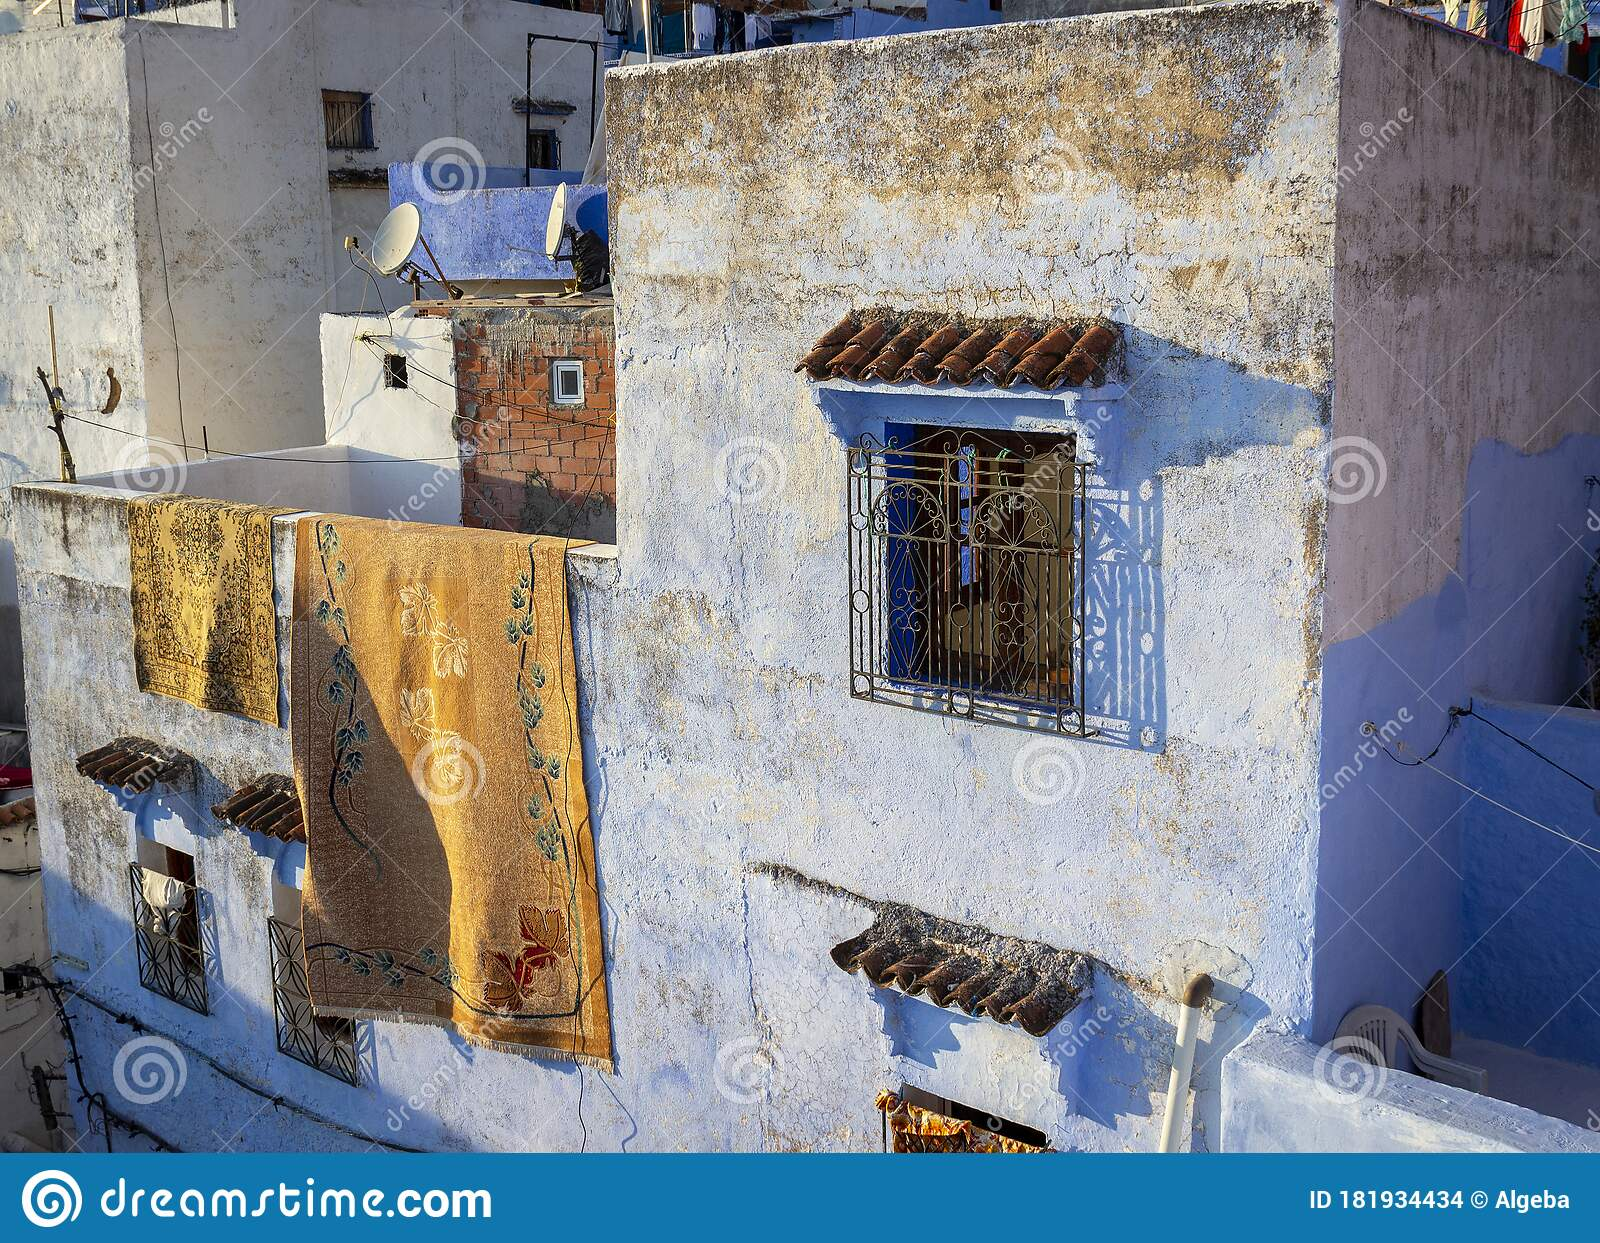 Carpet Draped Over Blue Wall Stock Photo Image Of Arabic Bazaar 181934434